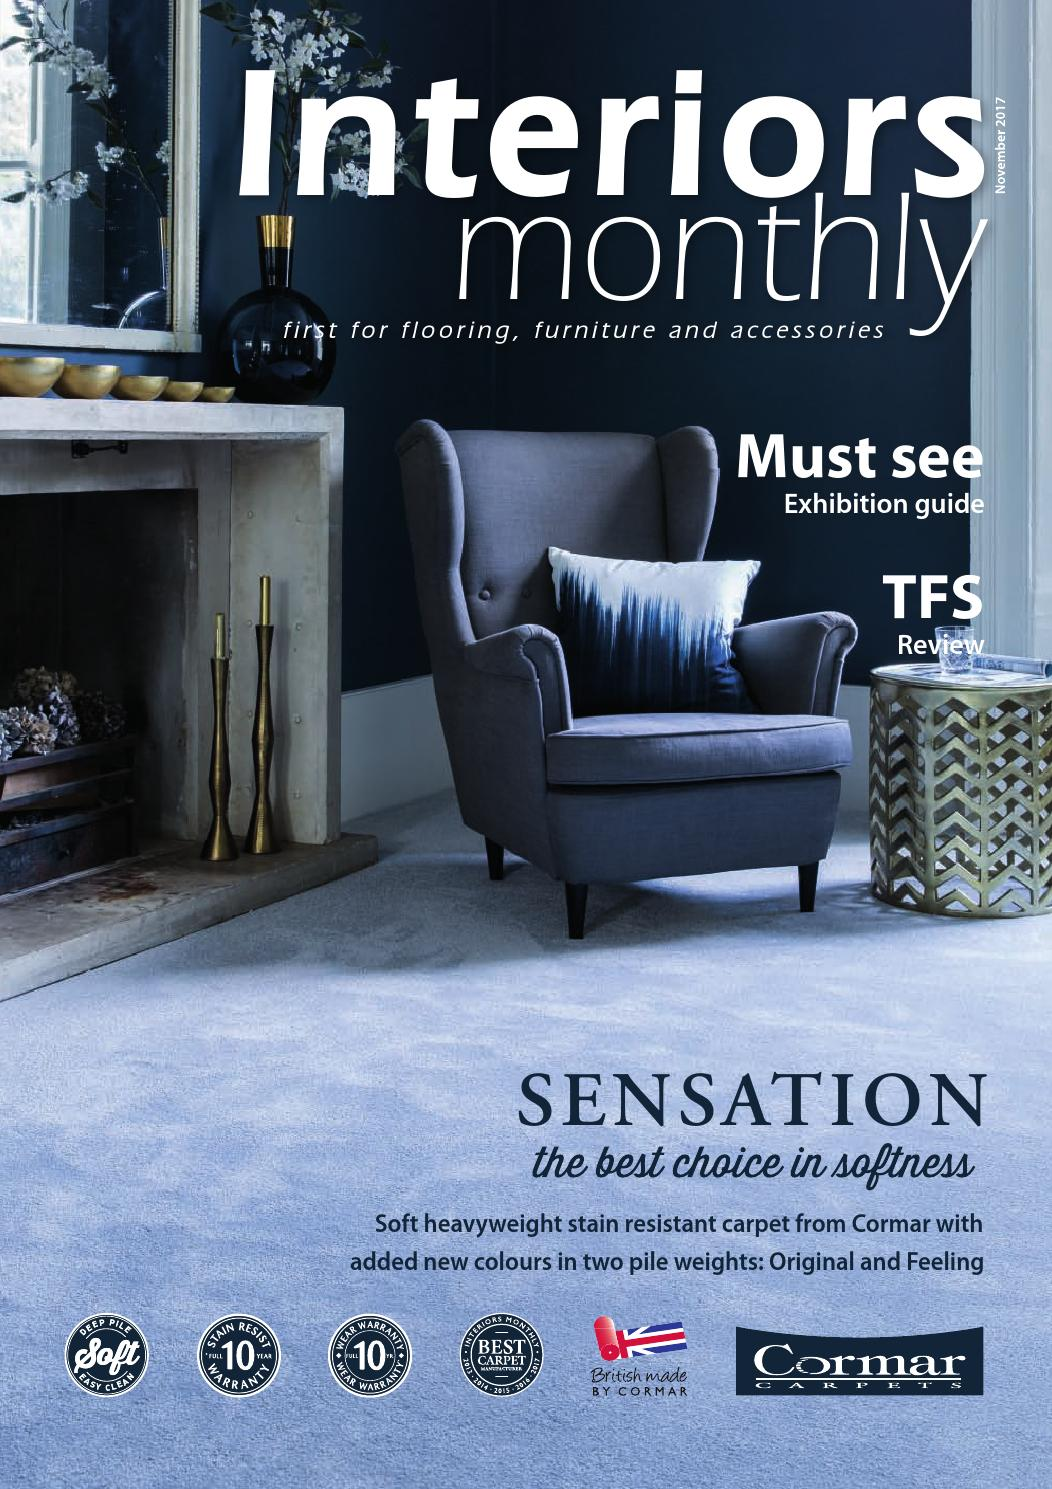 Interiors Monthly November 2017 by Interiors Monthly - issuu